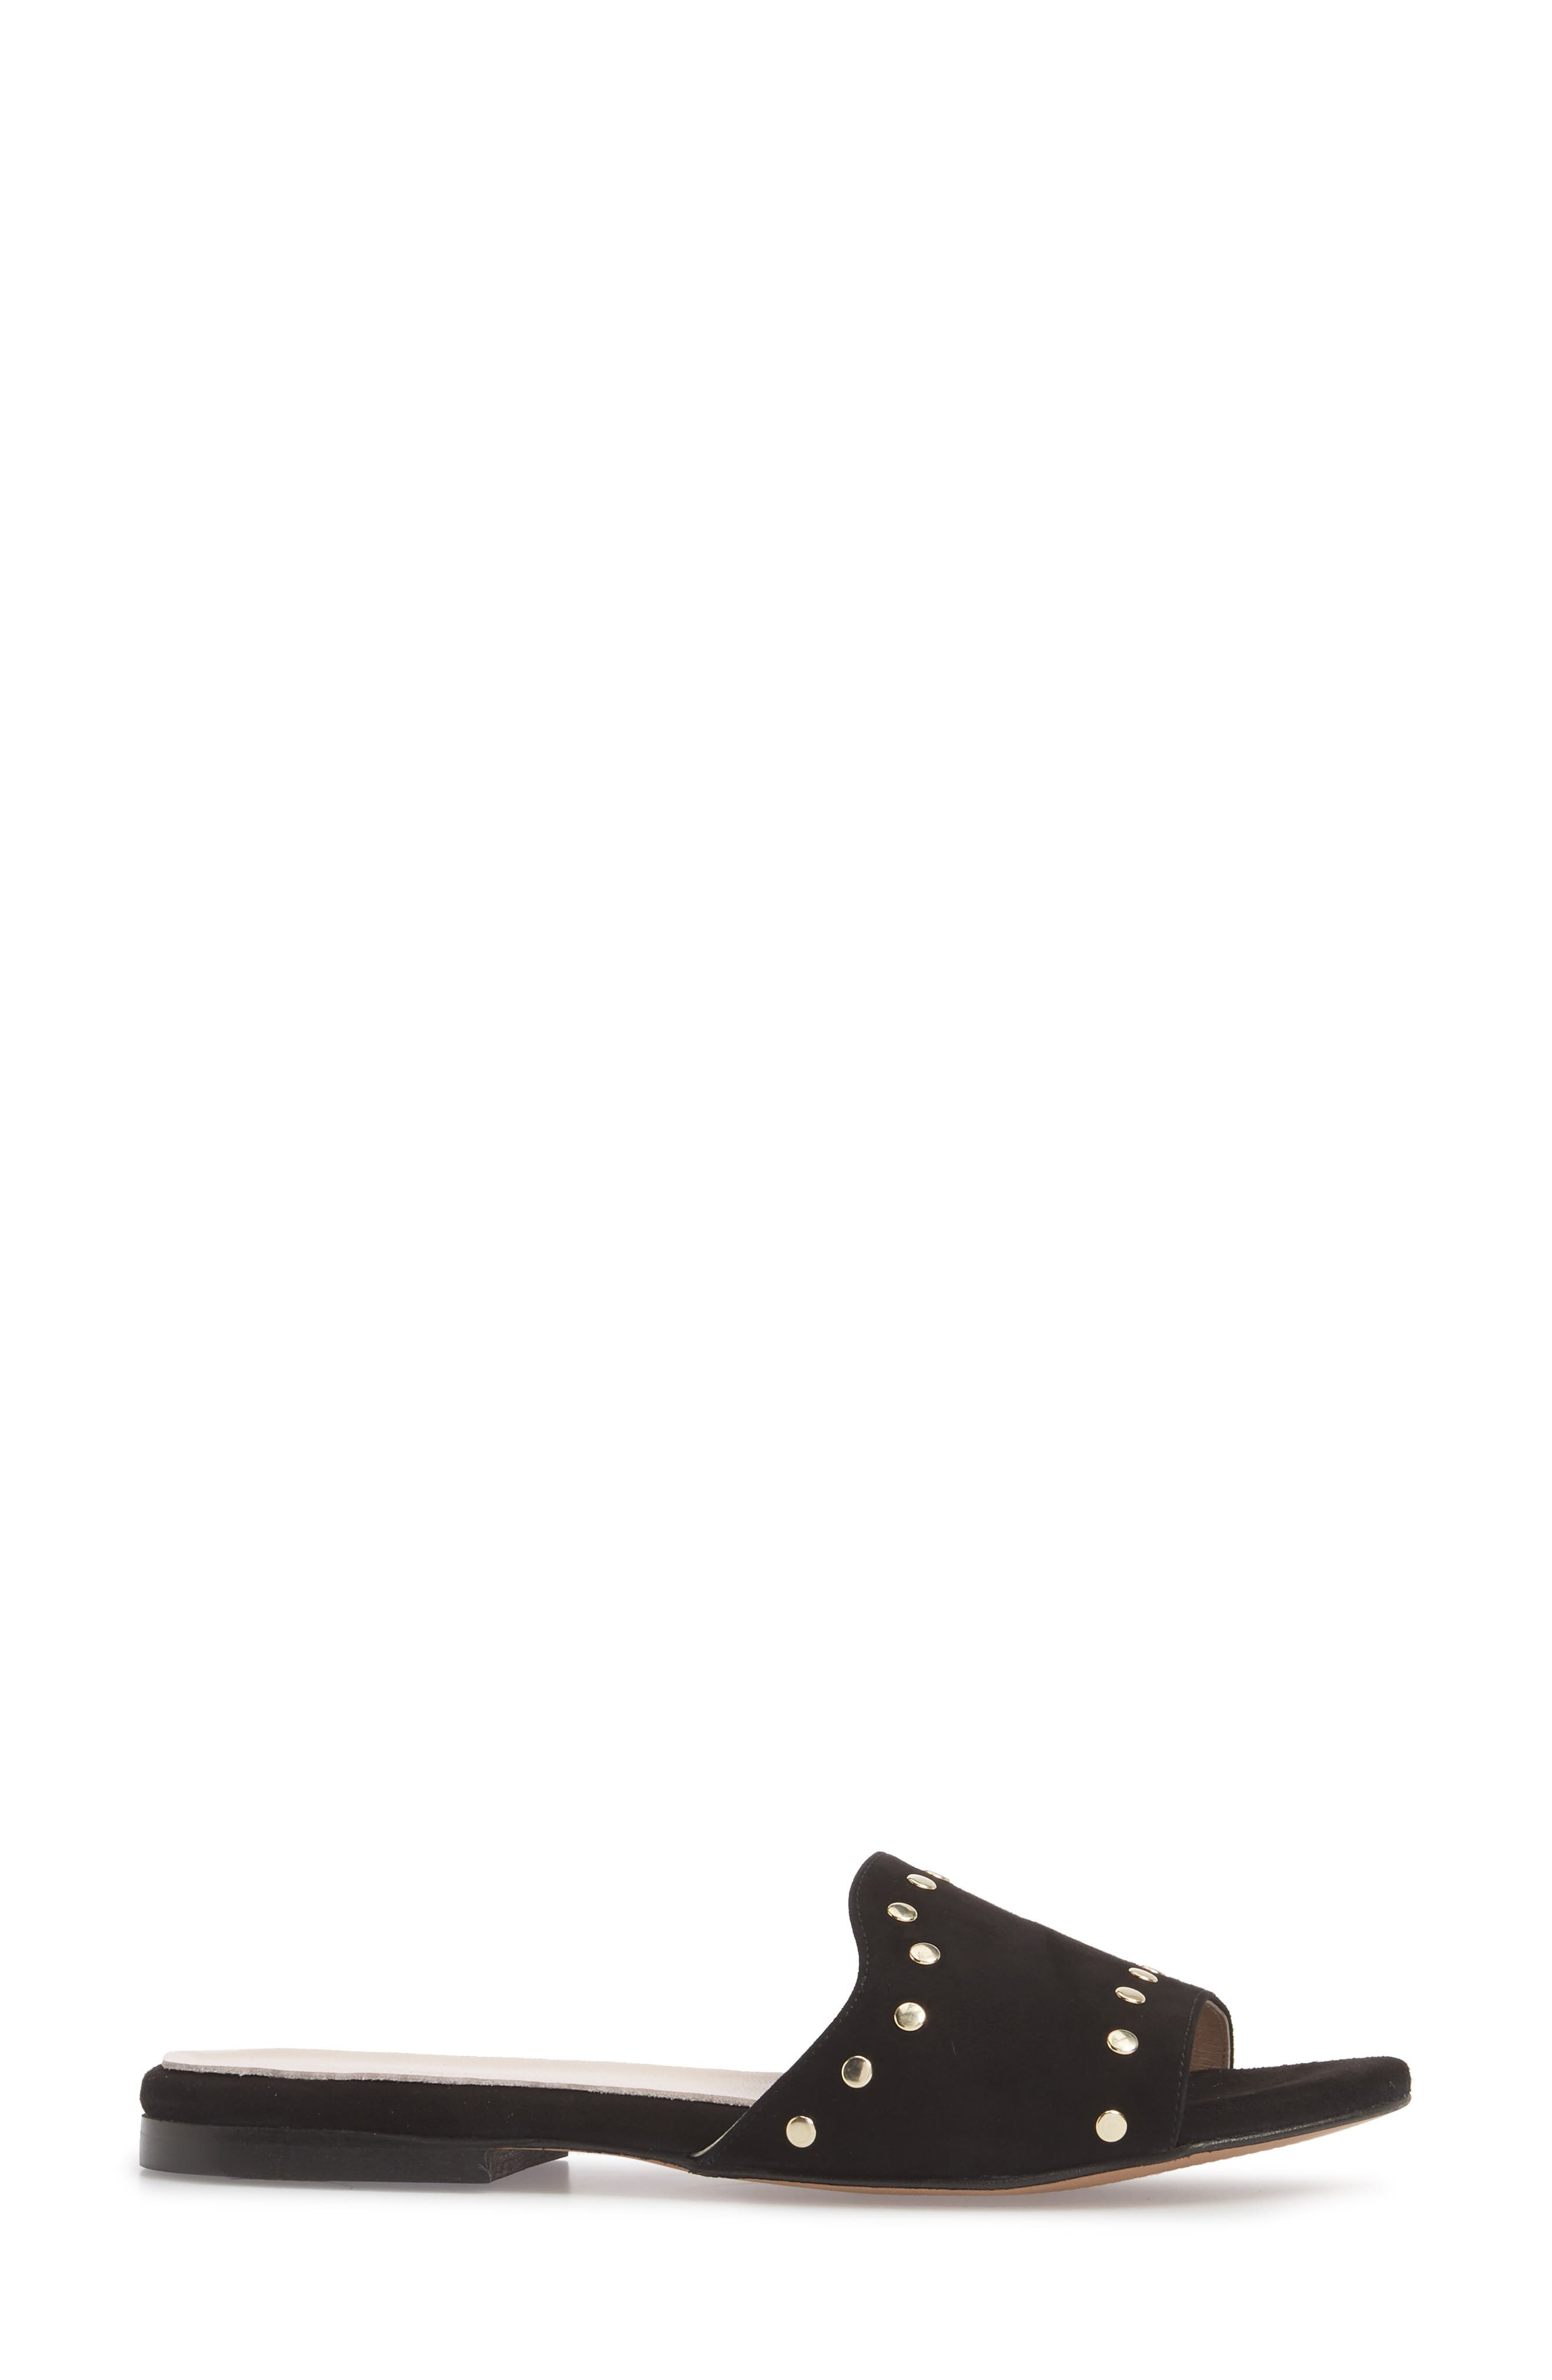 Mira Slide Sandal,                             Alternate thumbnail 3, color,                             BLACK SUEDE